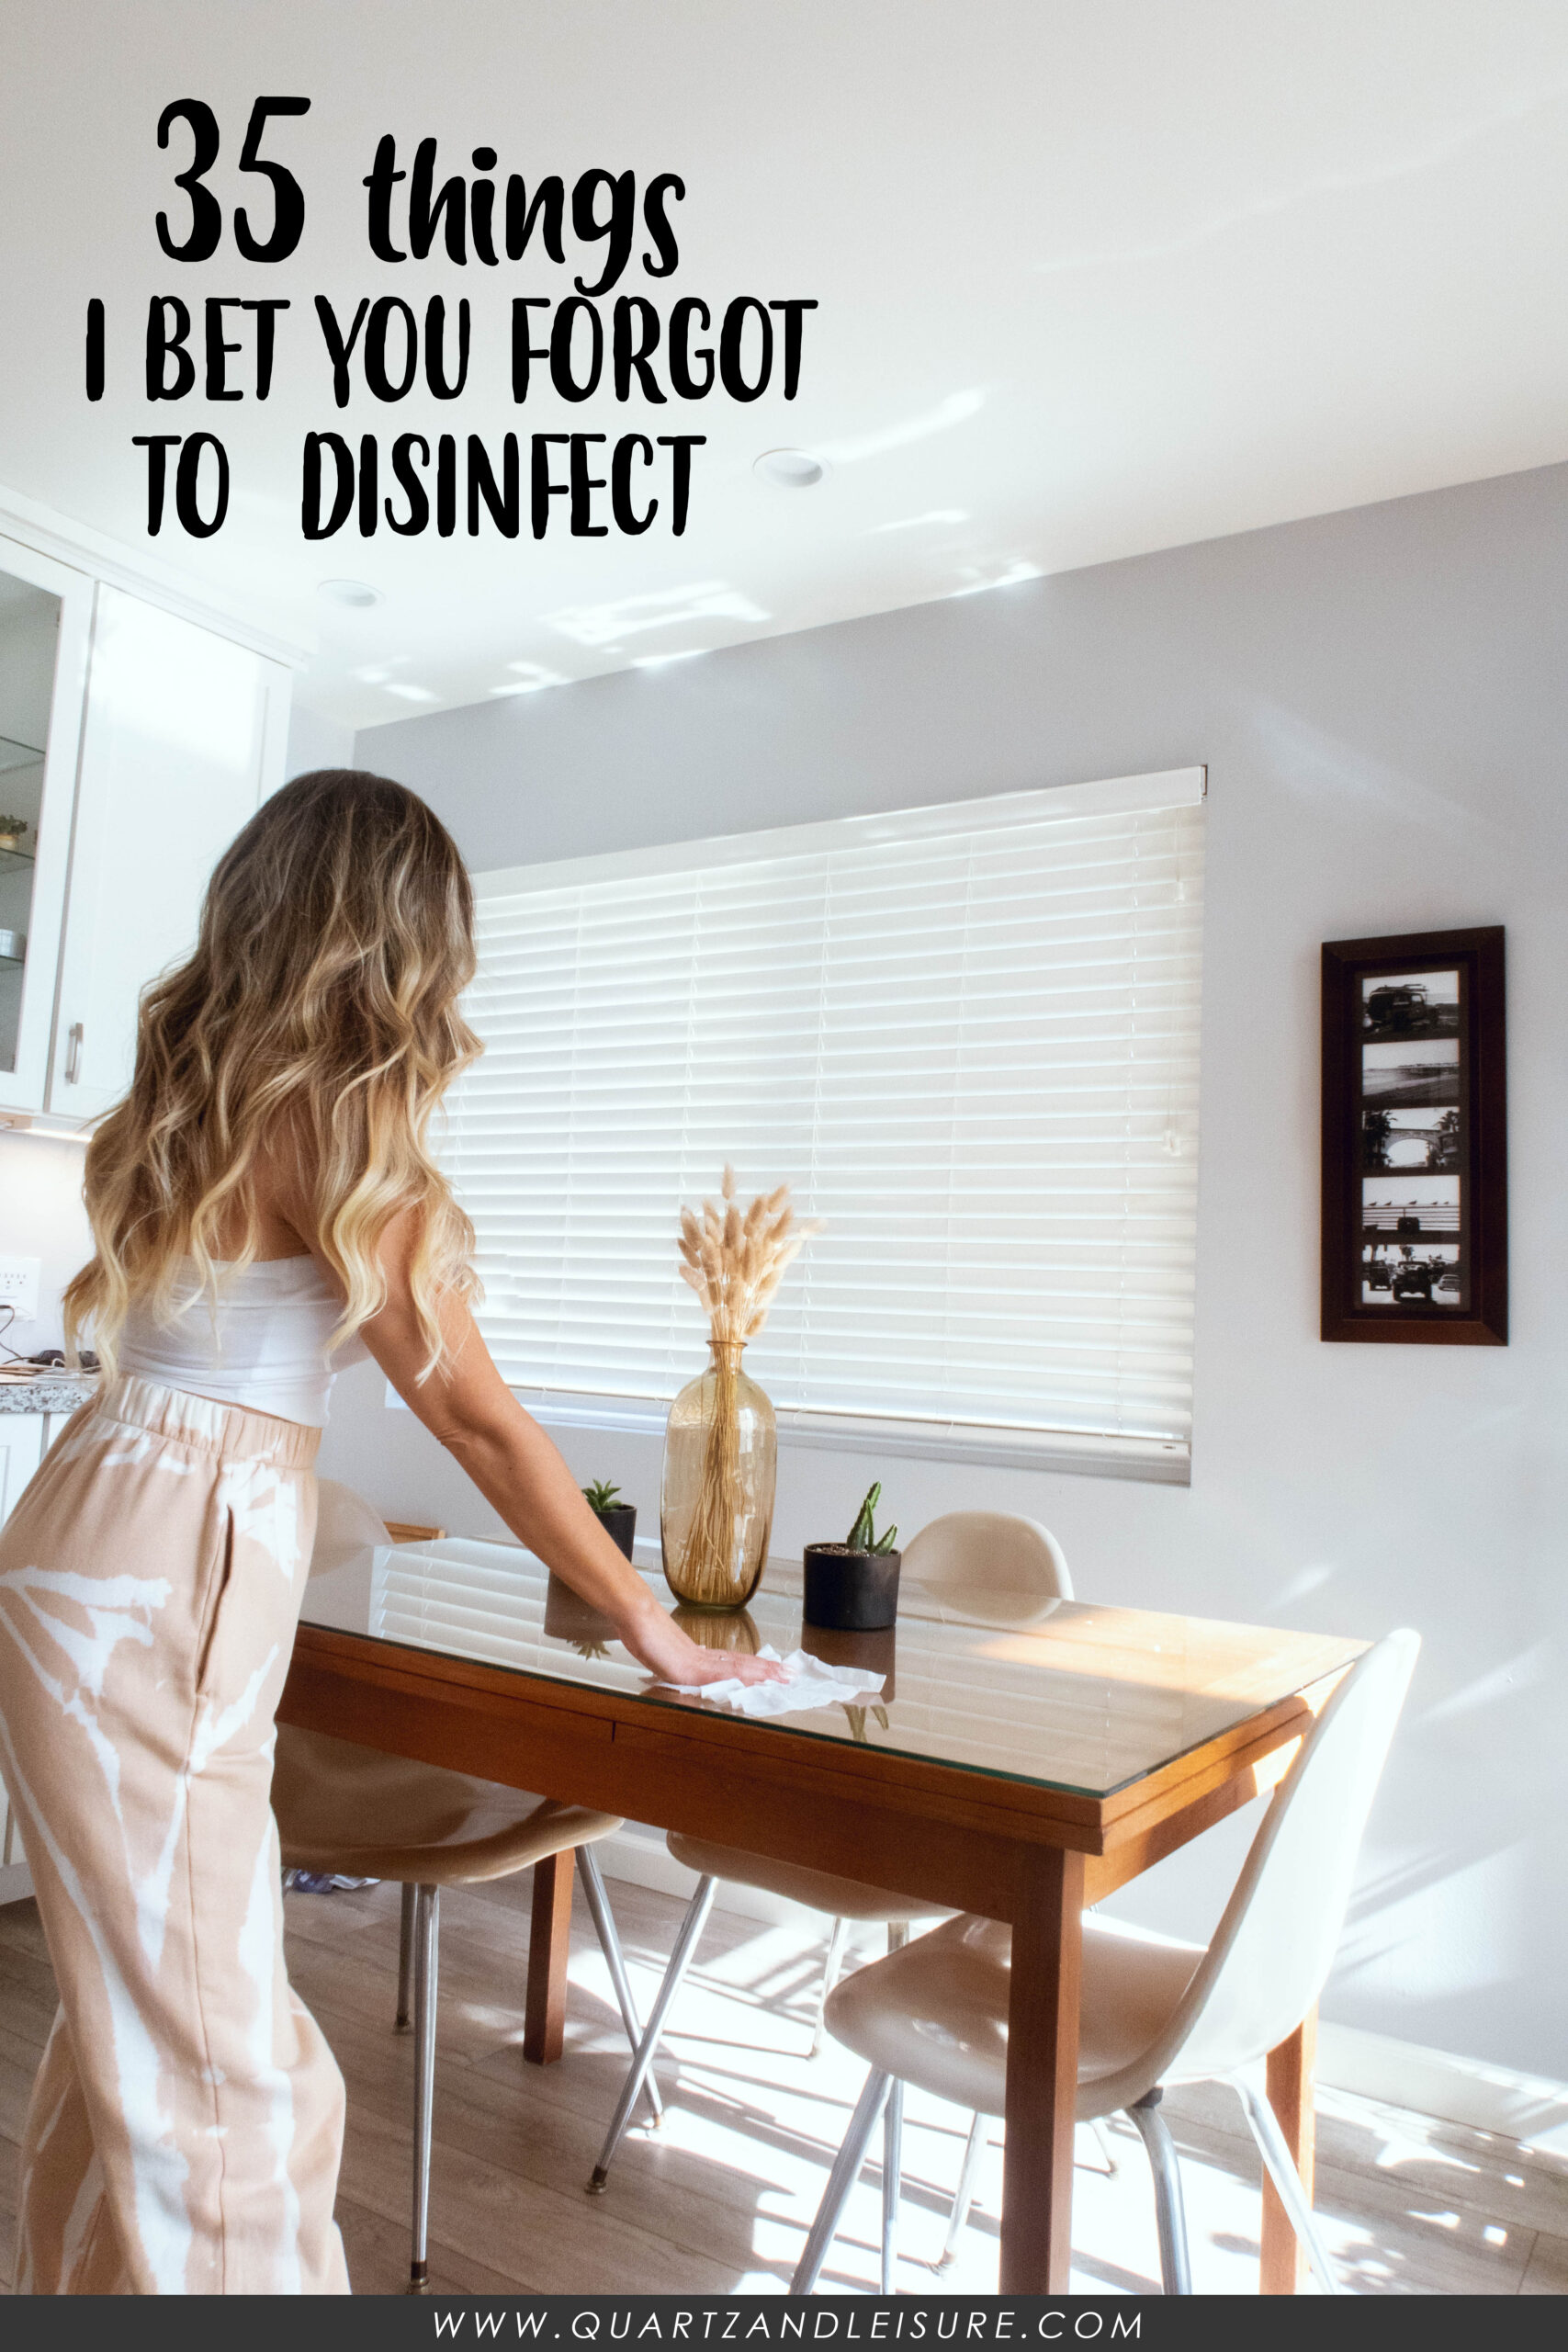 Things you forgot to disinfect